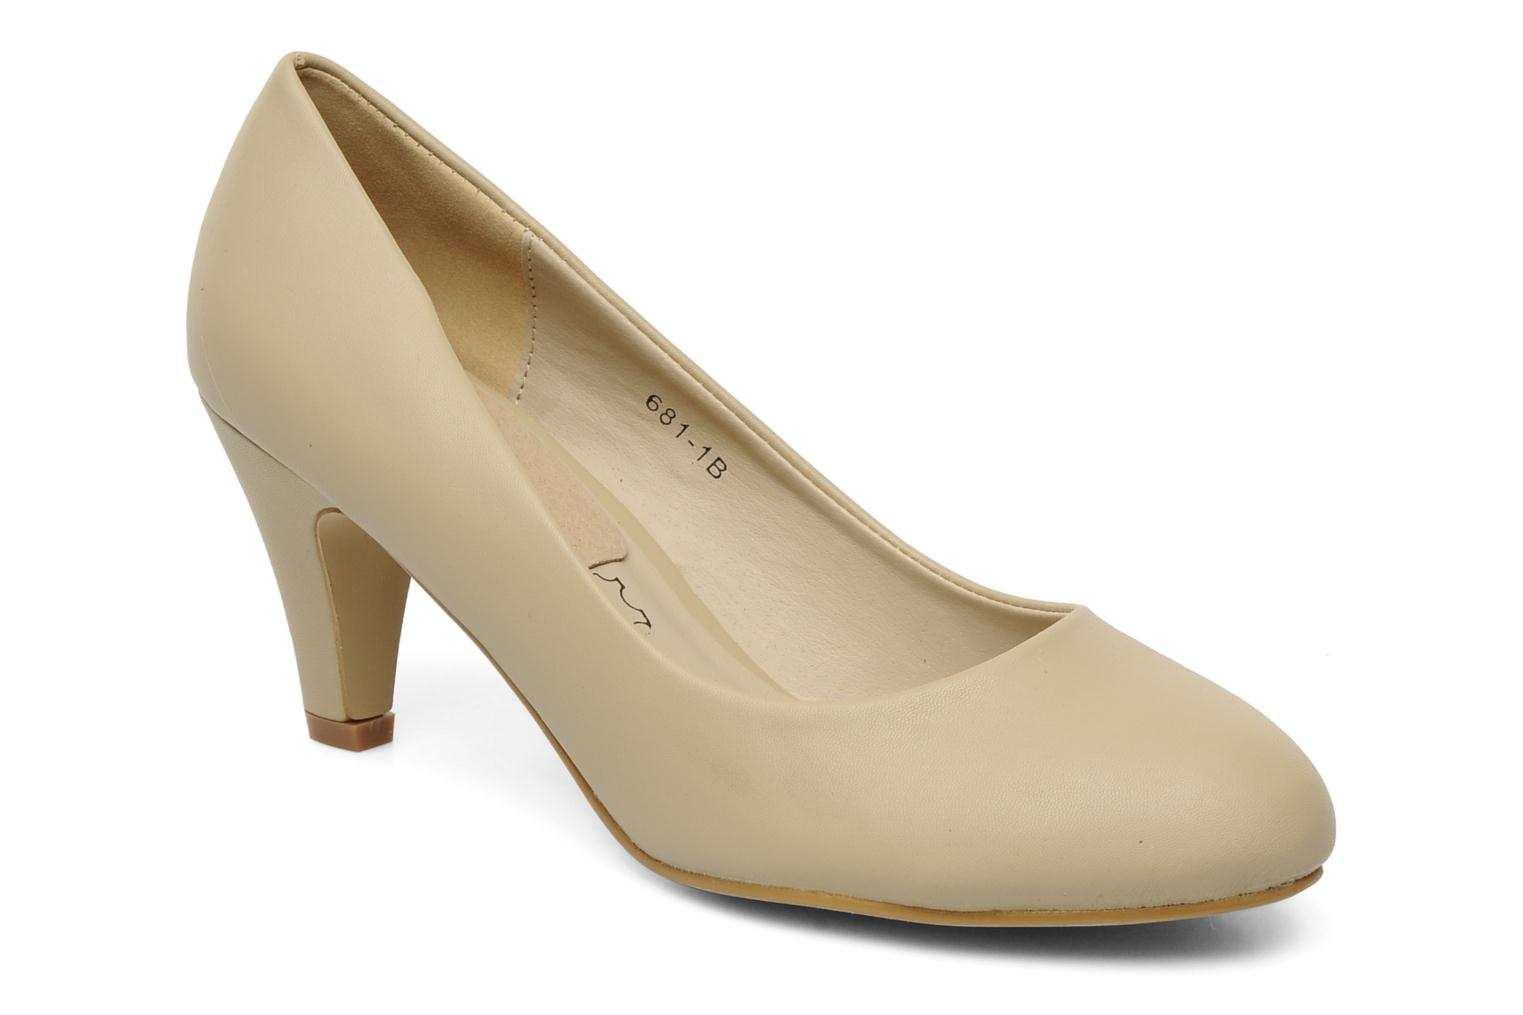 Pumps Eclipse Escarpin Moyen Talon Beige detail